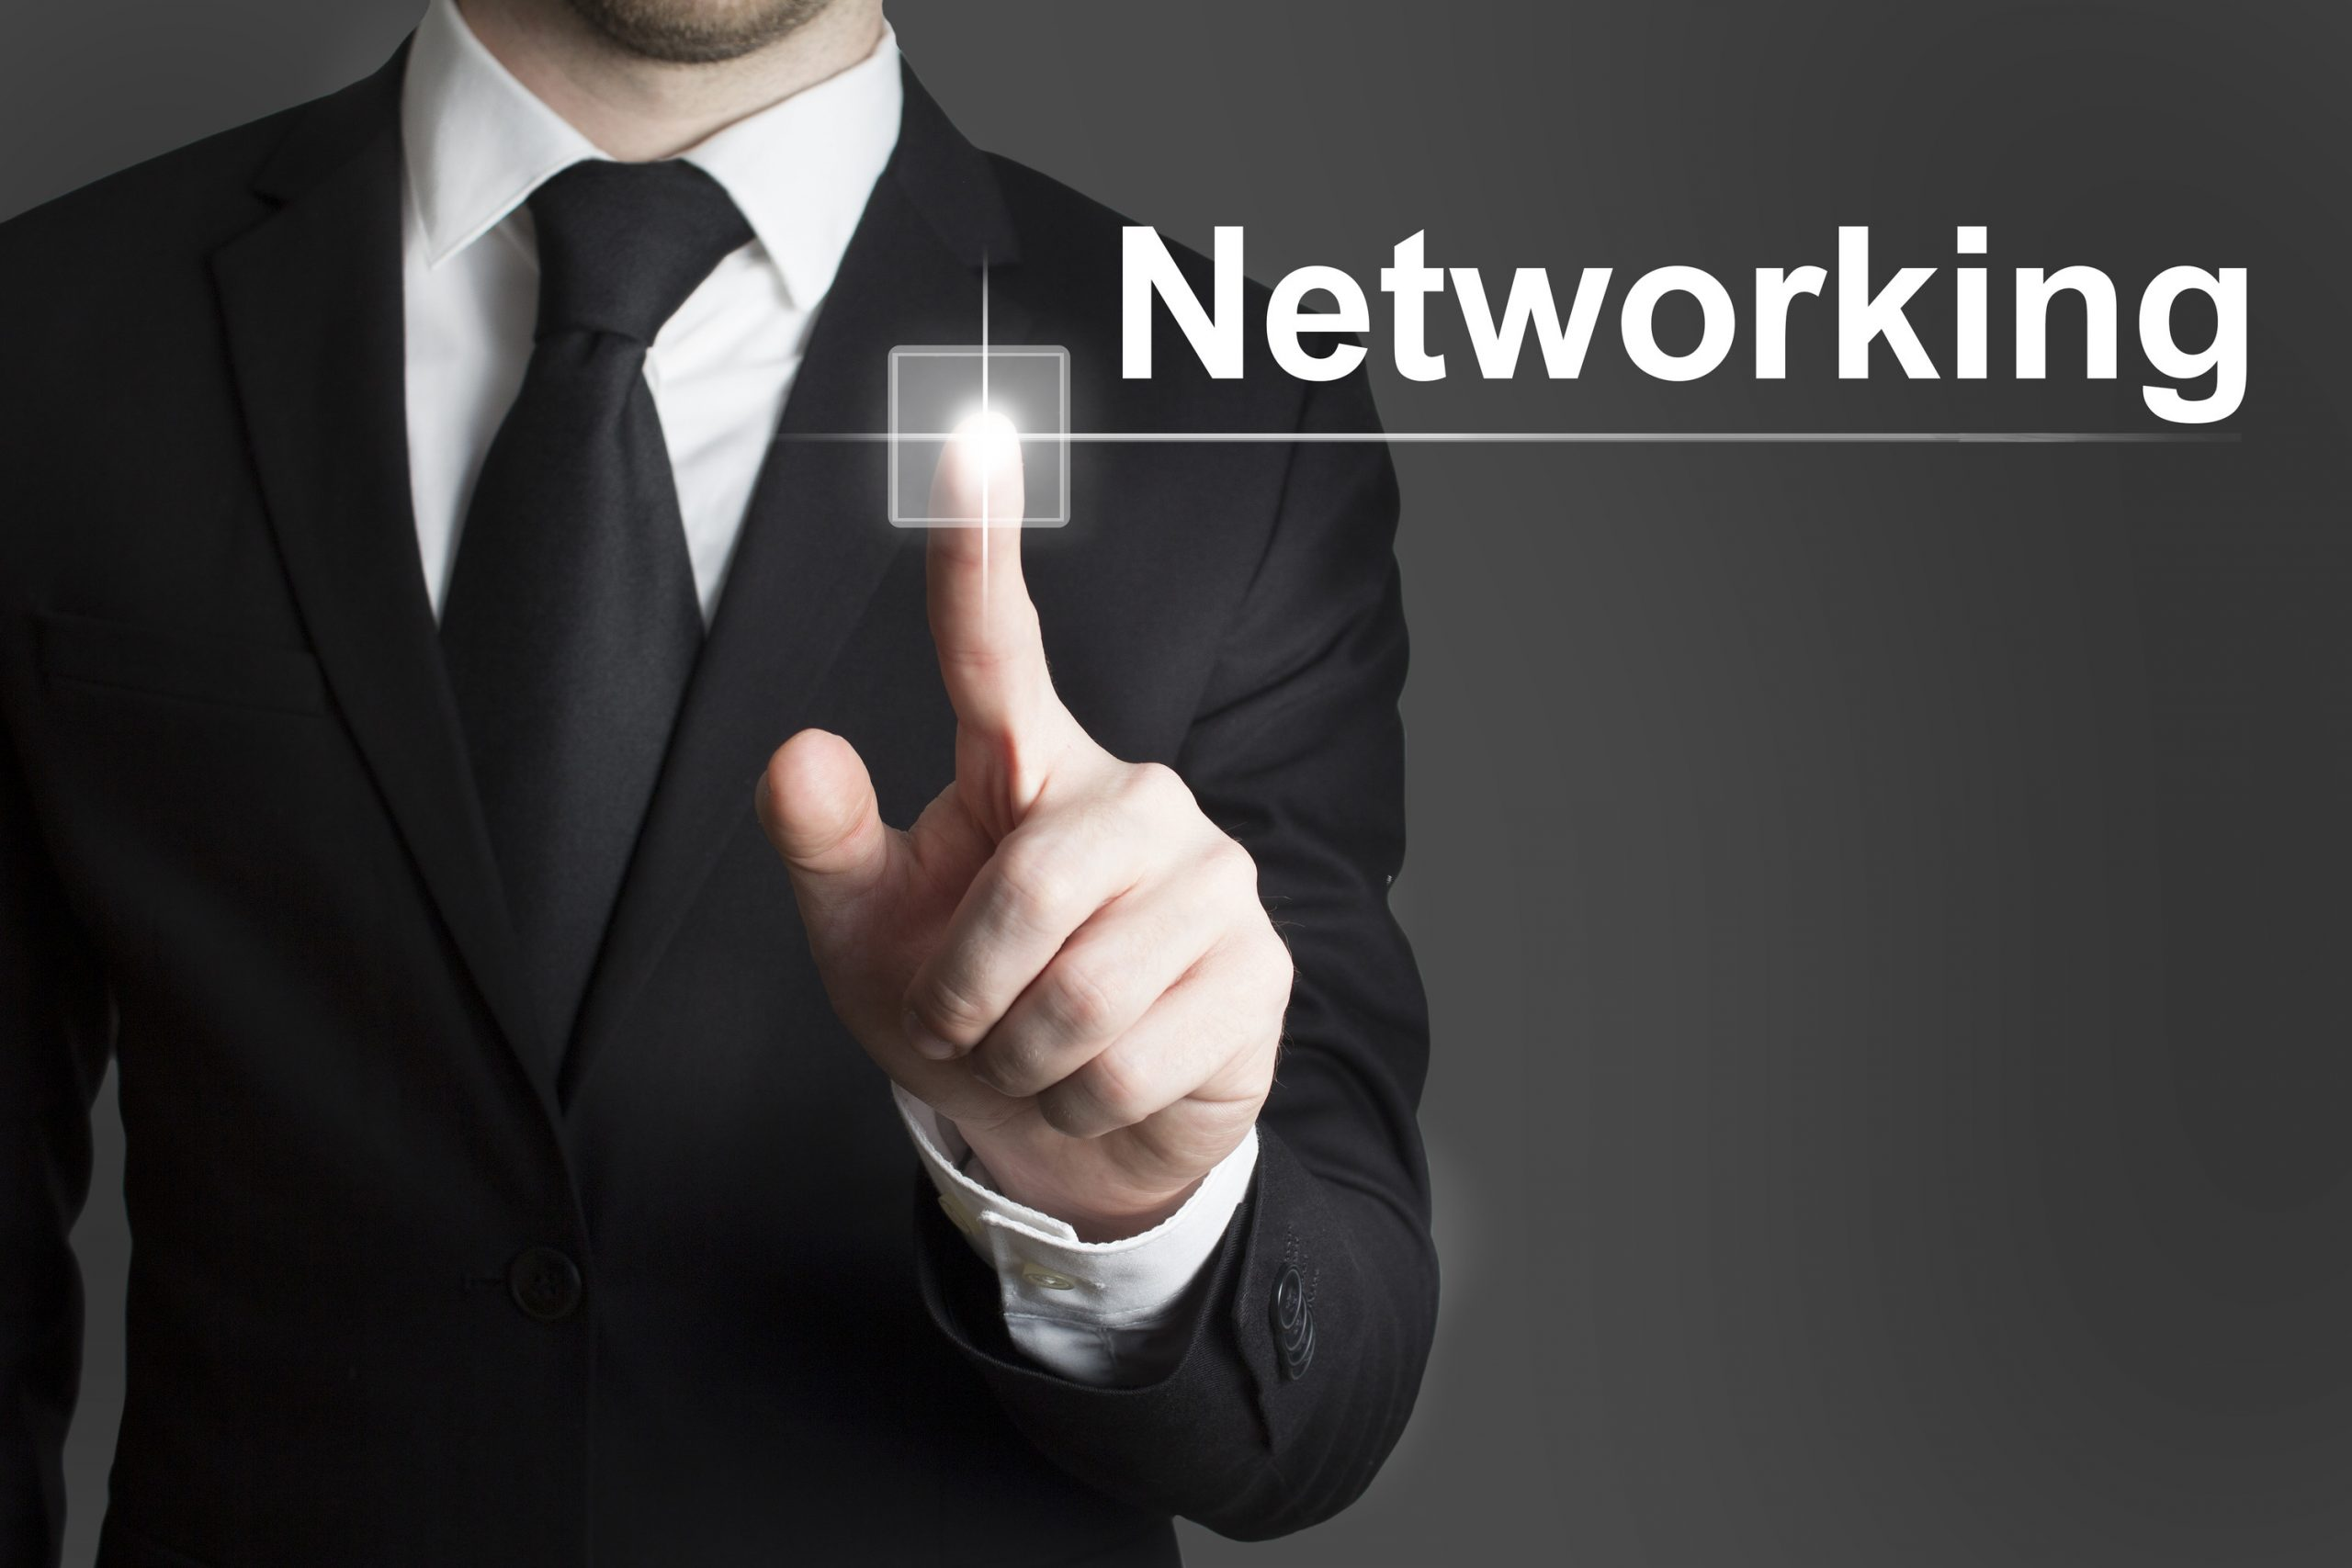 These tips will be sure to improve your networking skills!